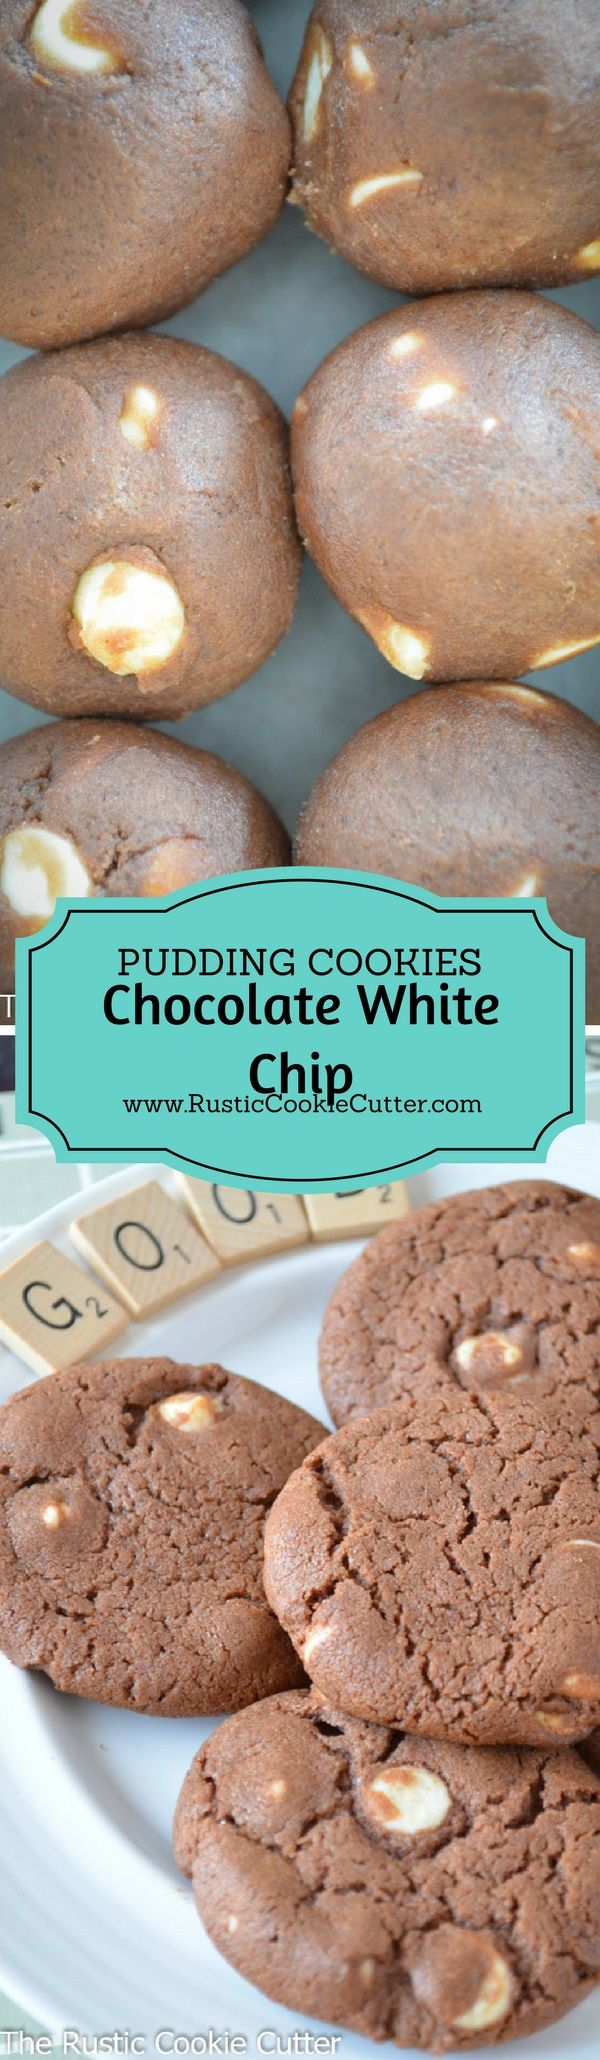 Super Soft & Chewy Chocolate Pudding Cookies - Chocolate White Chip Cookies